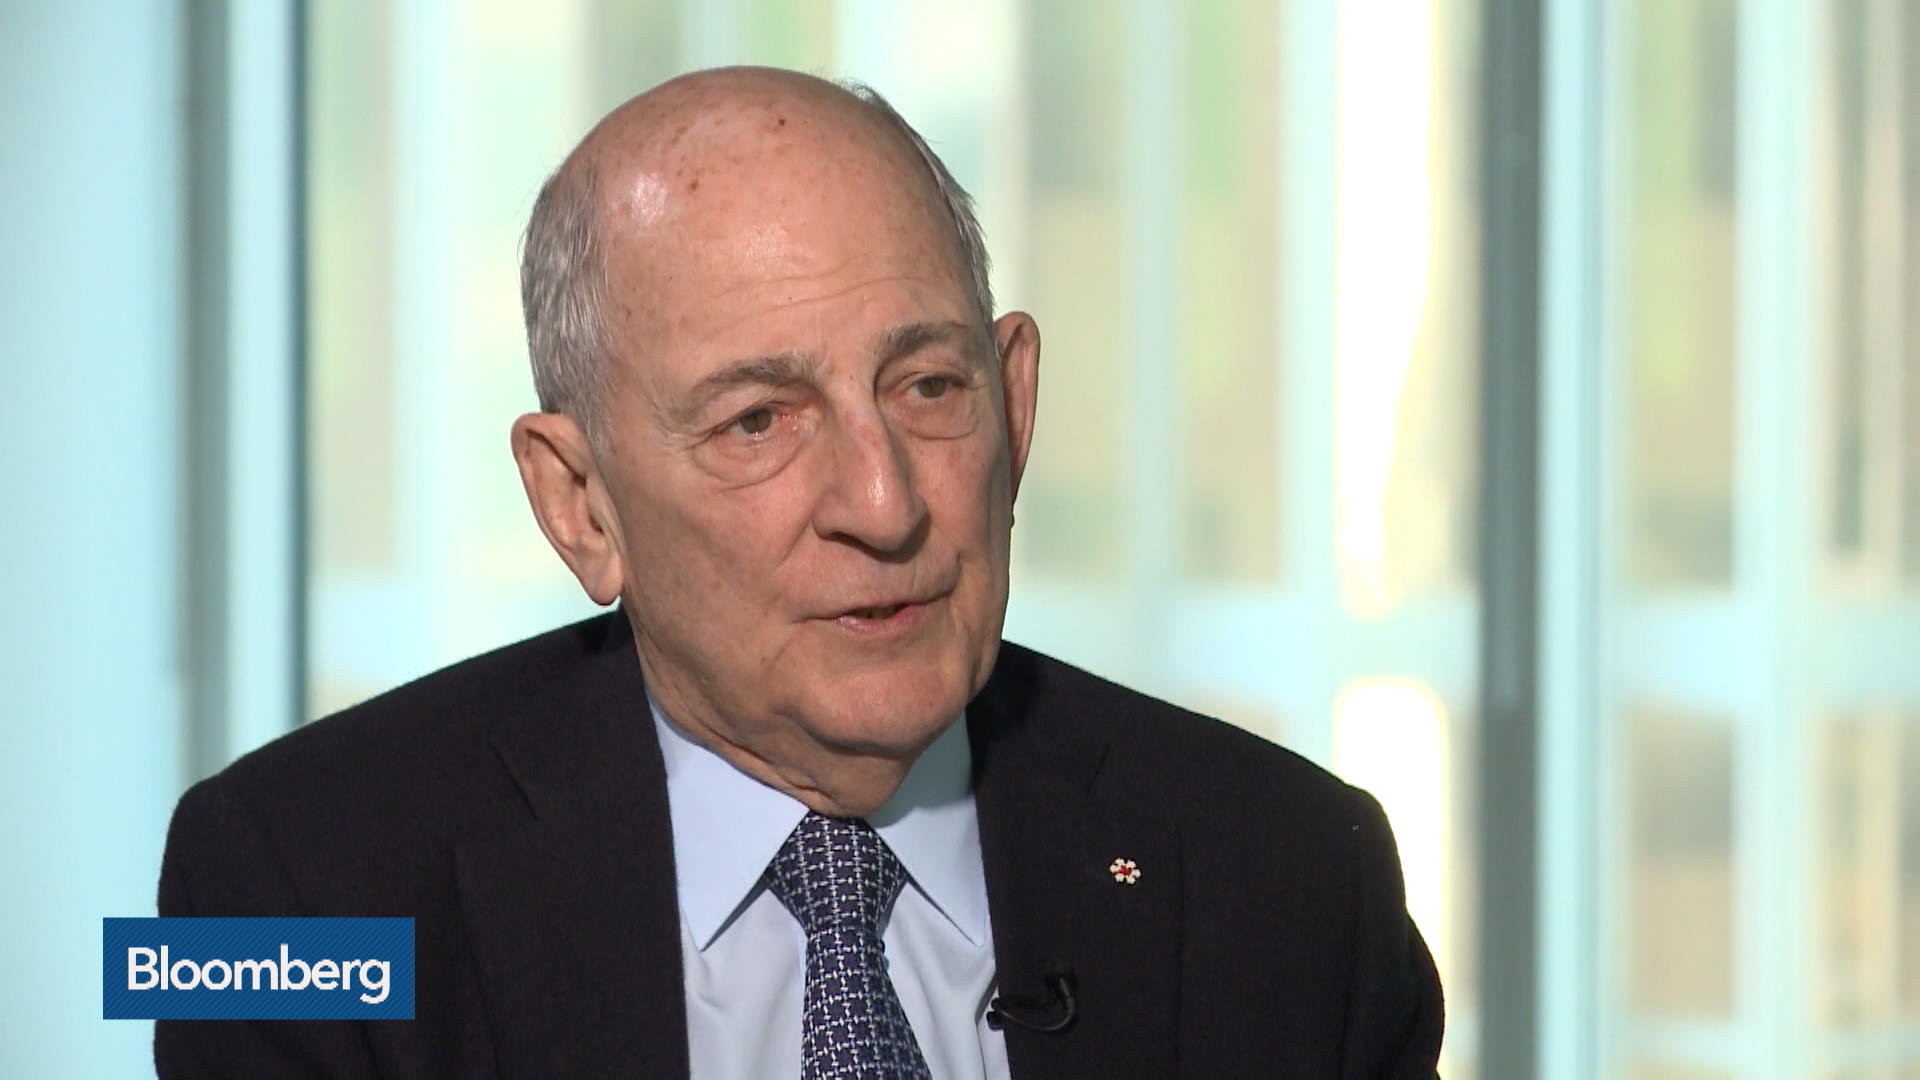 Charles Bronfman on the Demise of the Seagram Empire